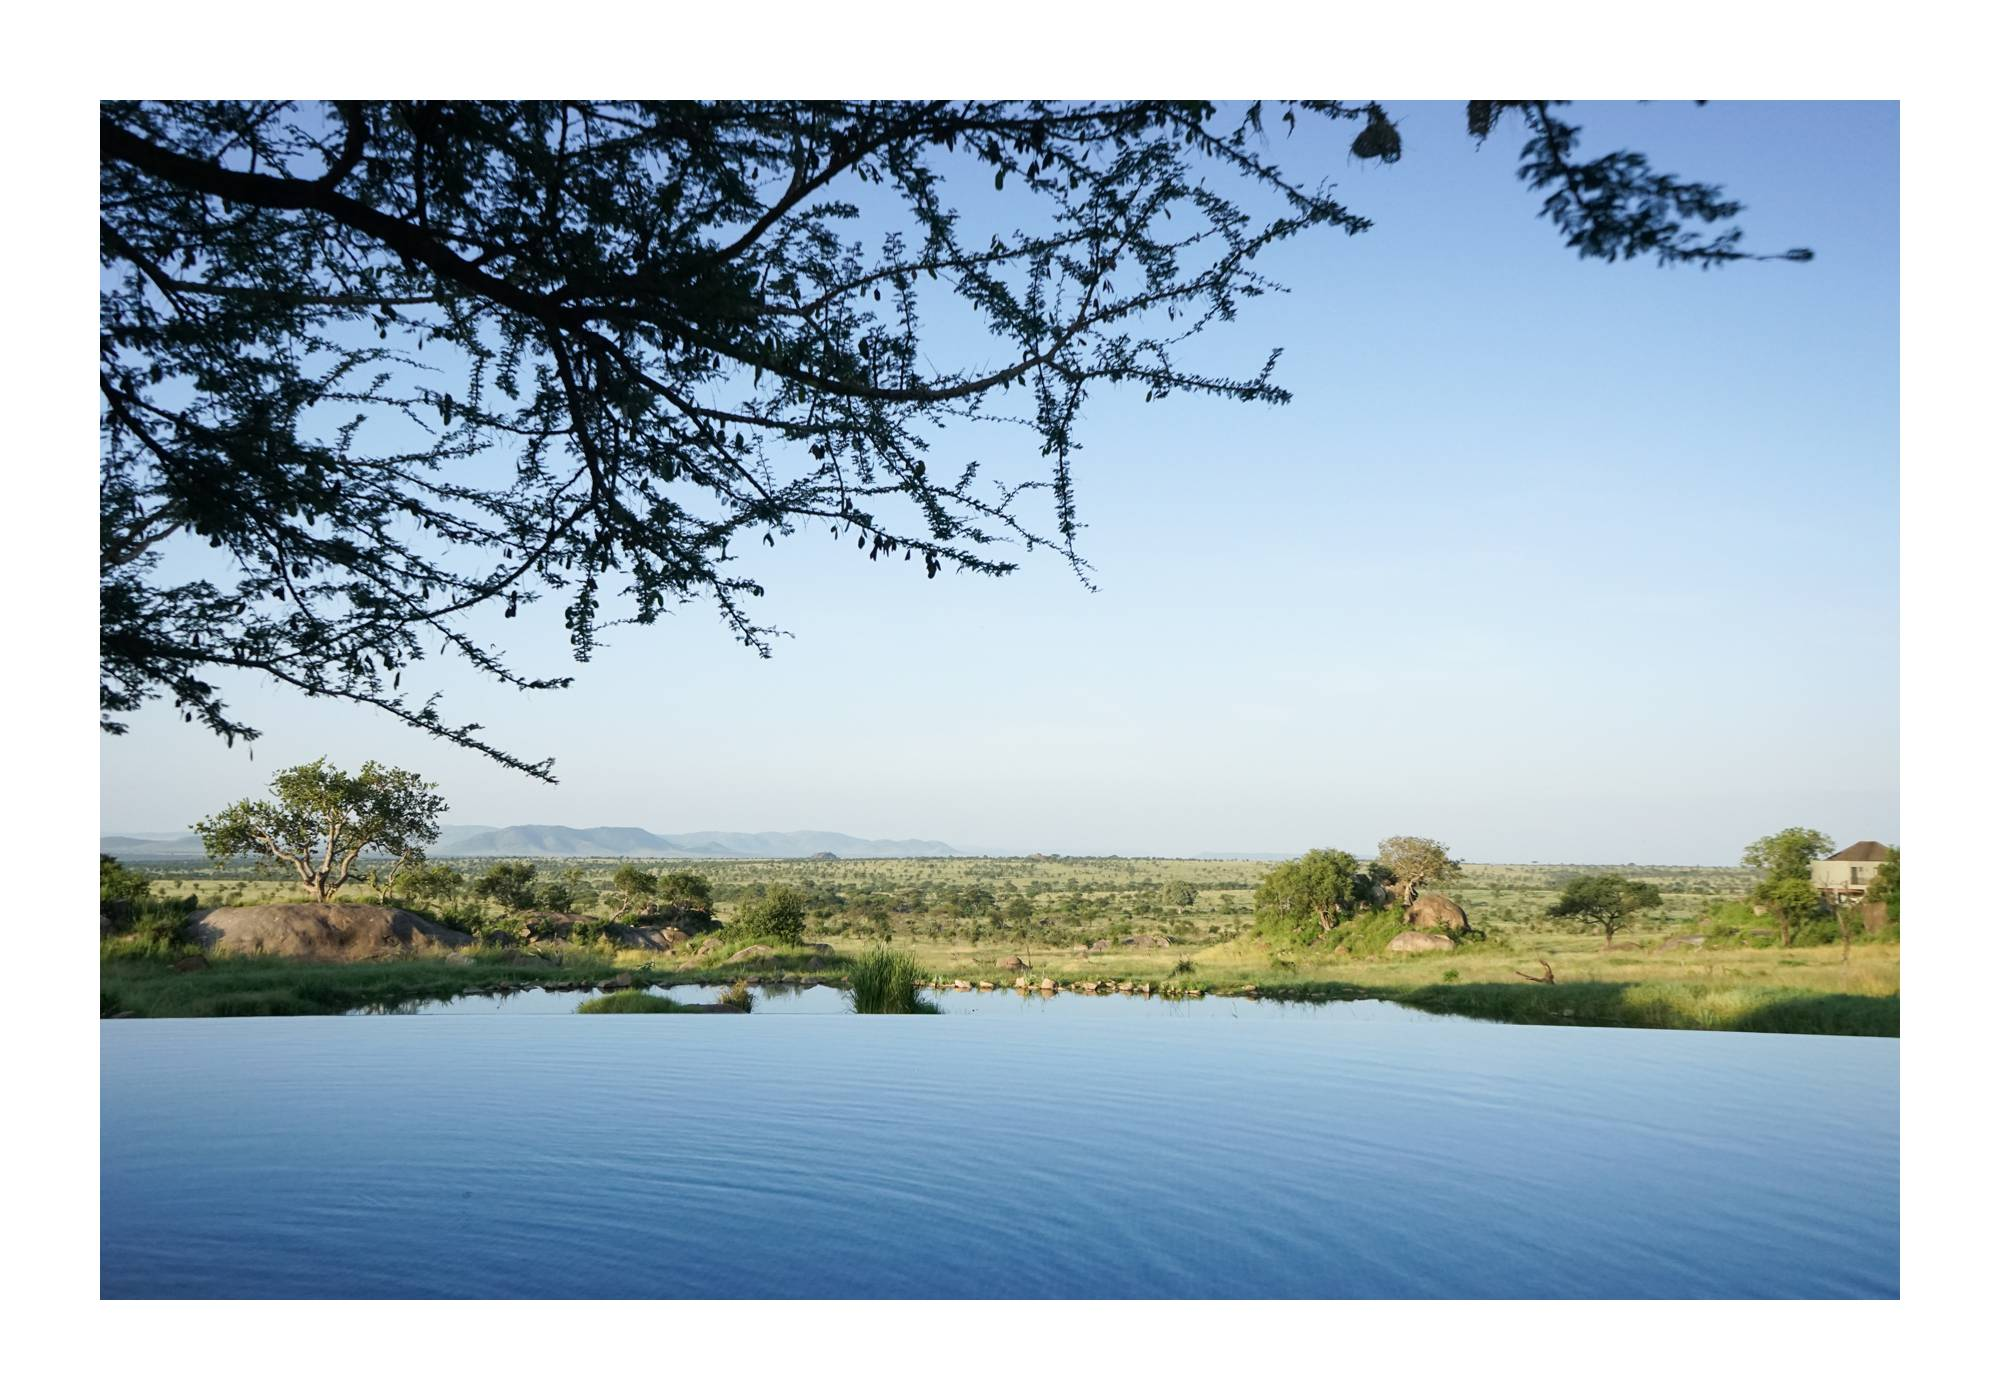 View of Serengeti with pool